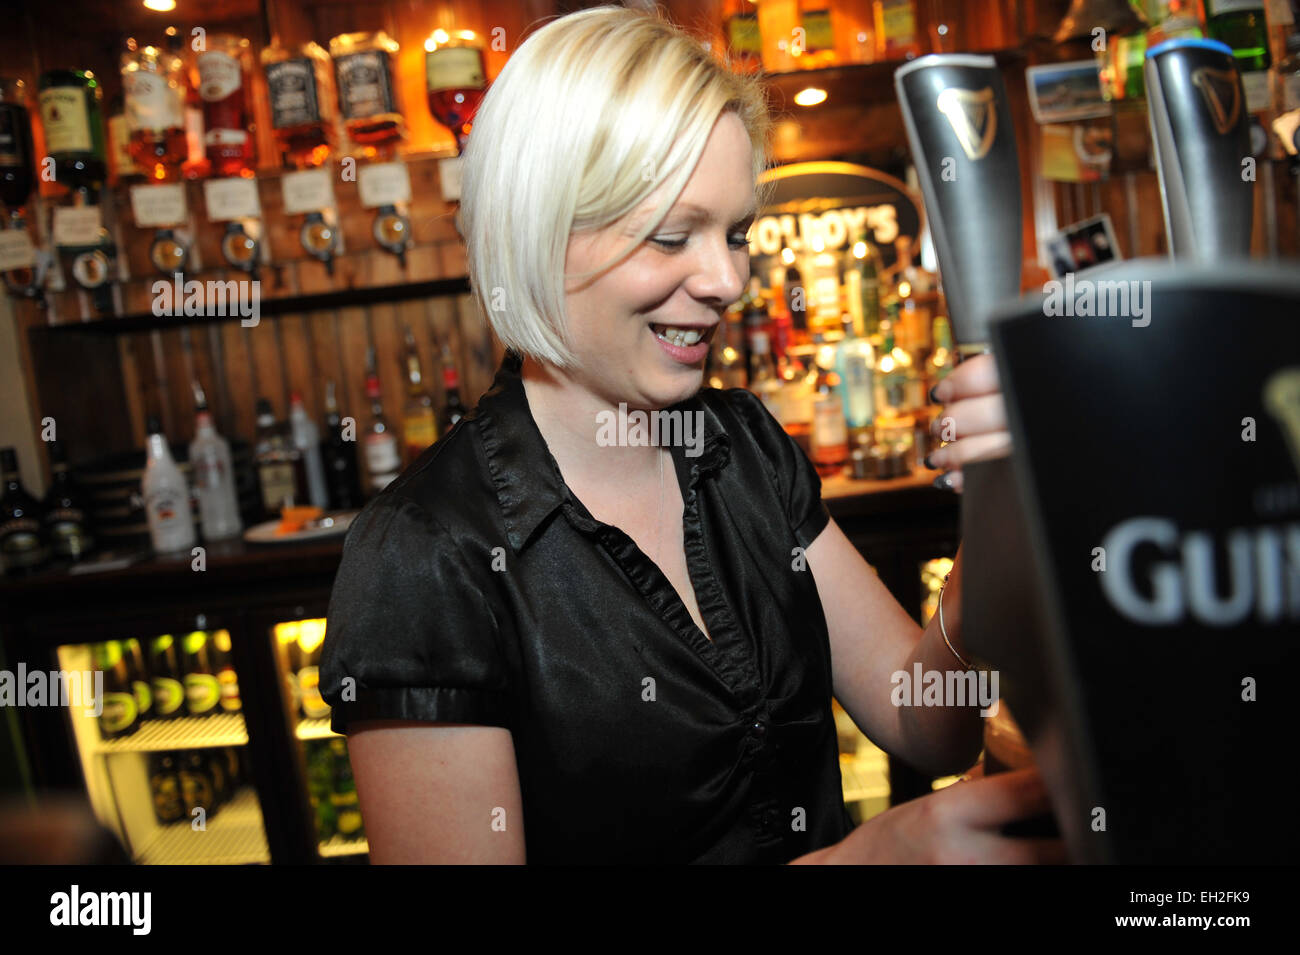 Barmaid pulls a pint in a local pub, Lancashire. - Stock Image